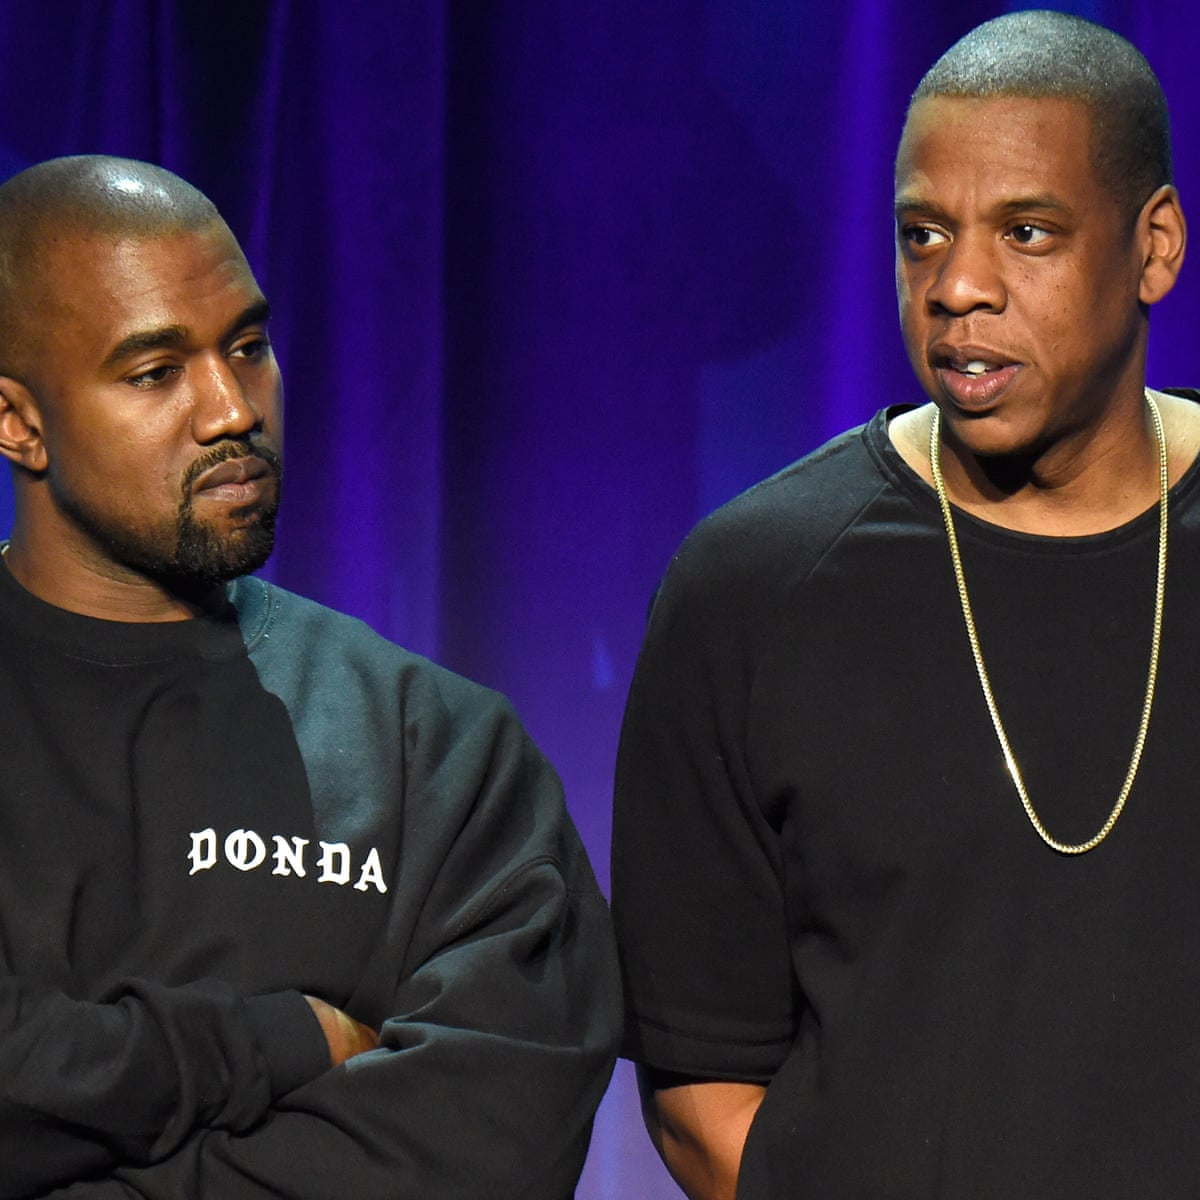 kanye-west-and-jay-z-reunite-fans-are-going-crazy-with-excitement